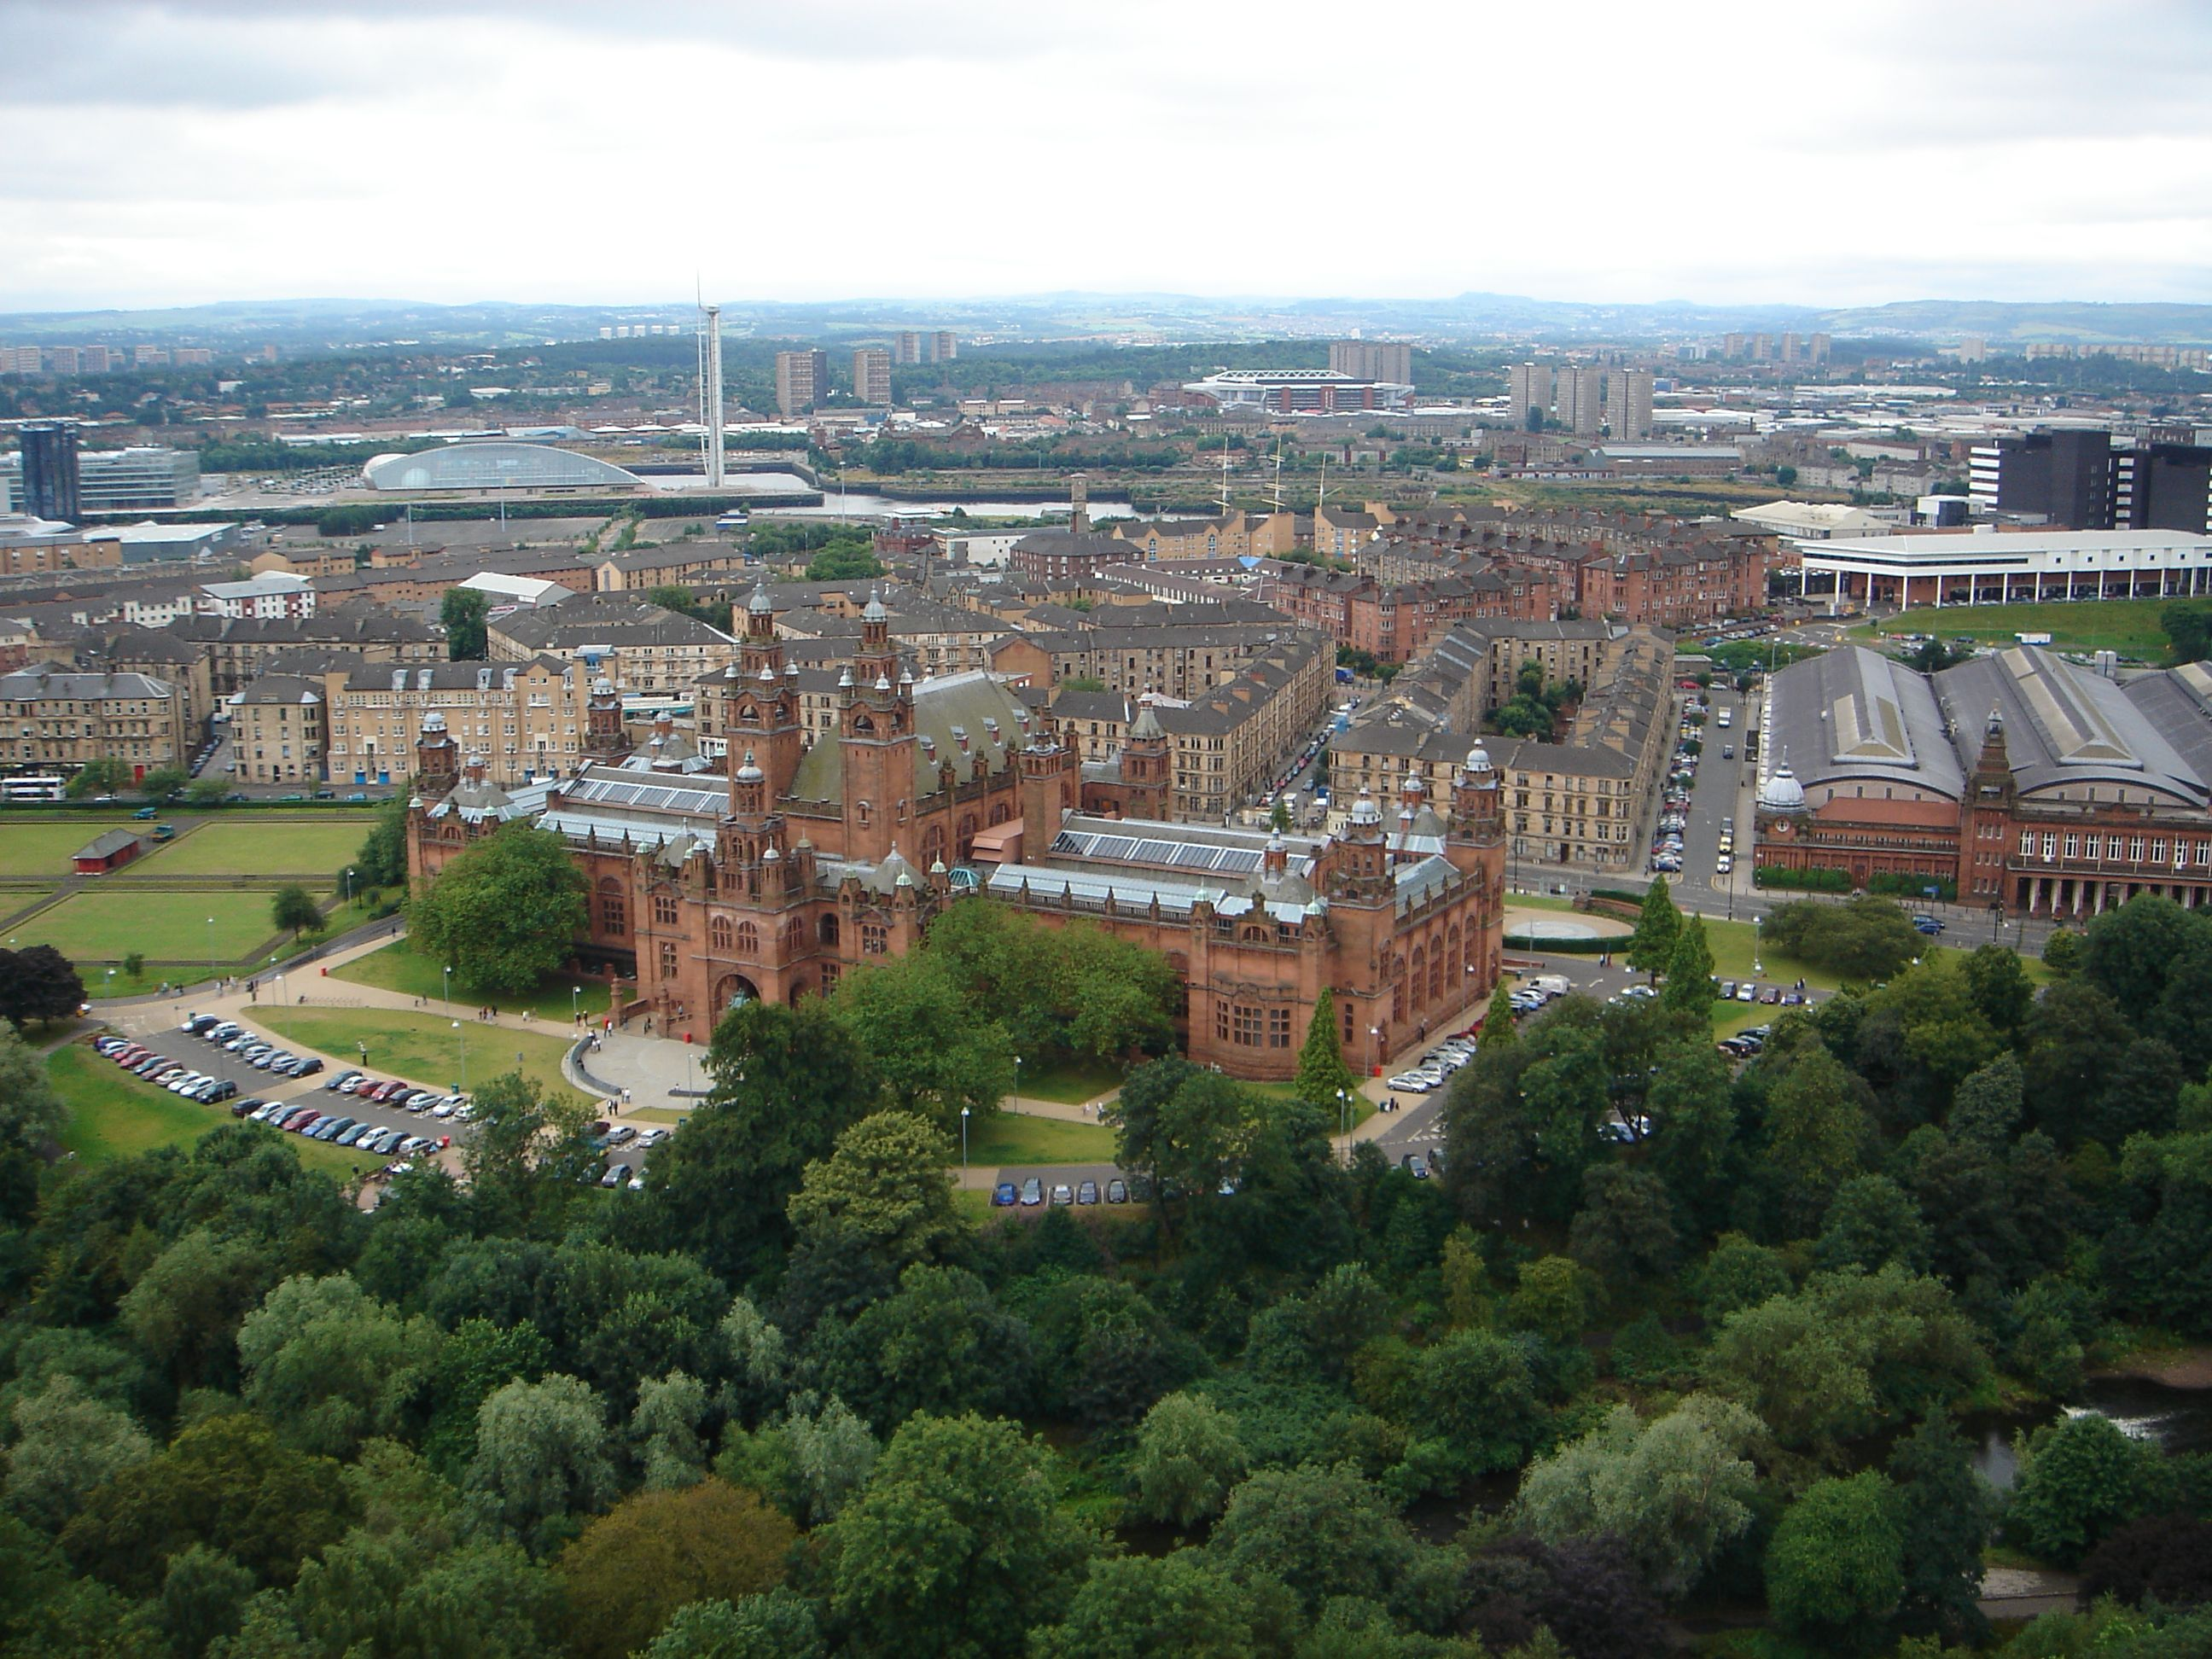 Kelvingrove_Art_Gallery_and_Museum_from_the_University_of_Glasgow_Tower